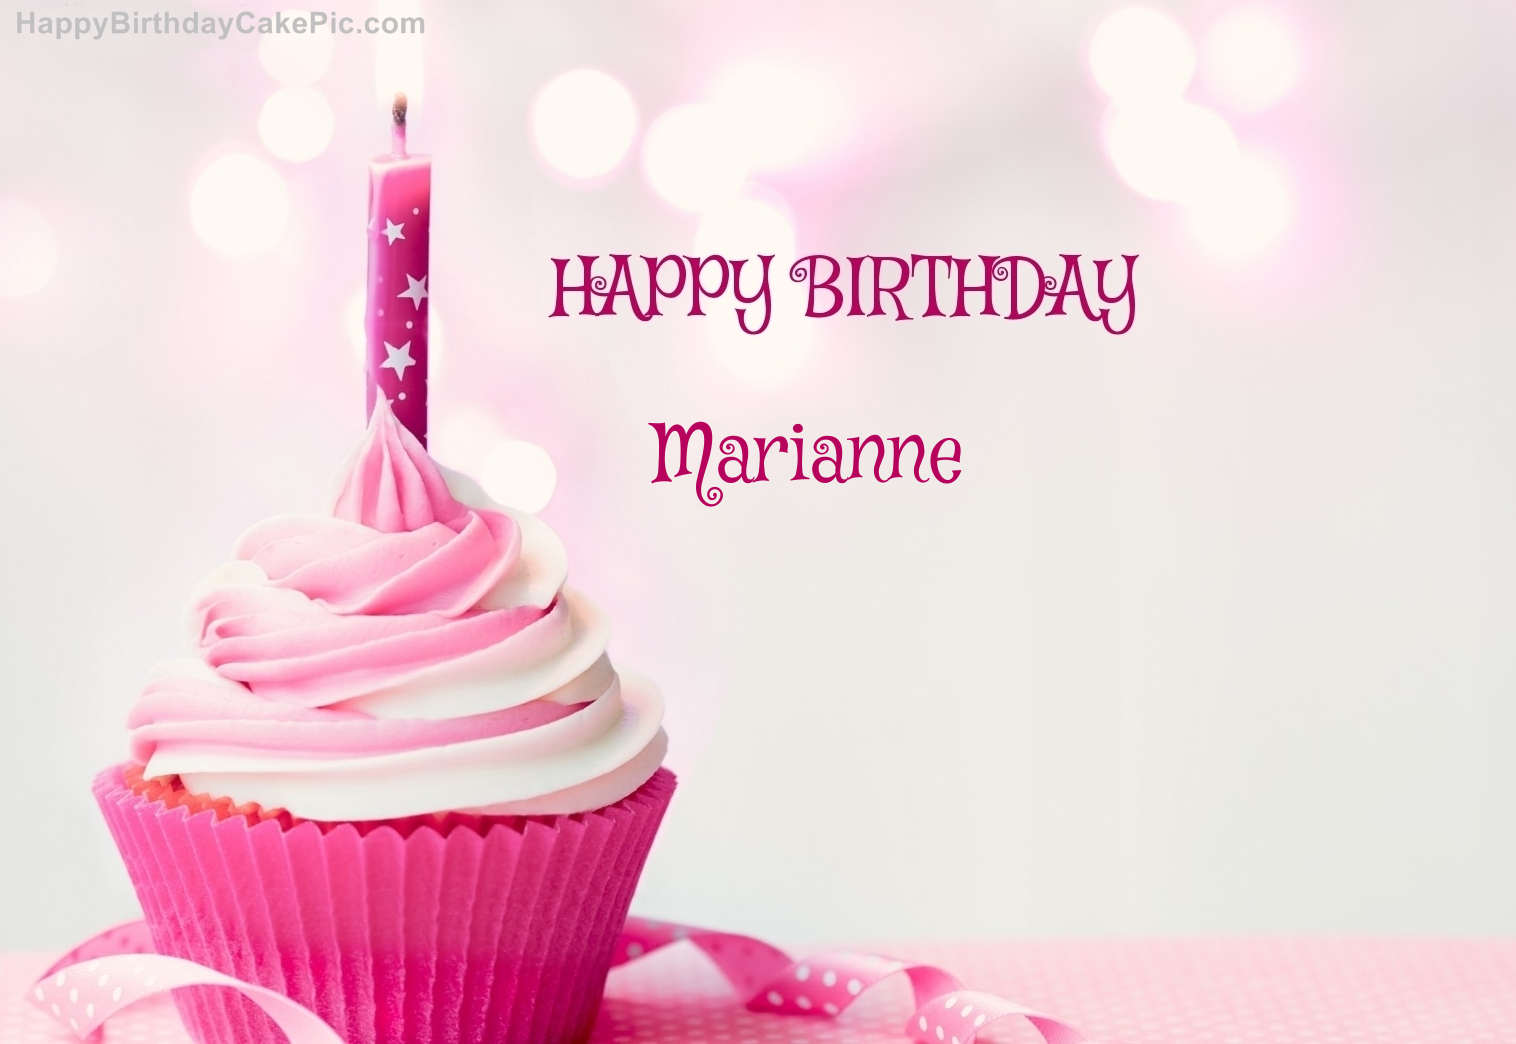 Happy Birthday Cupcake Candle Pink Cake For Marianne